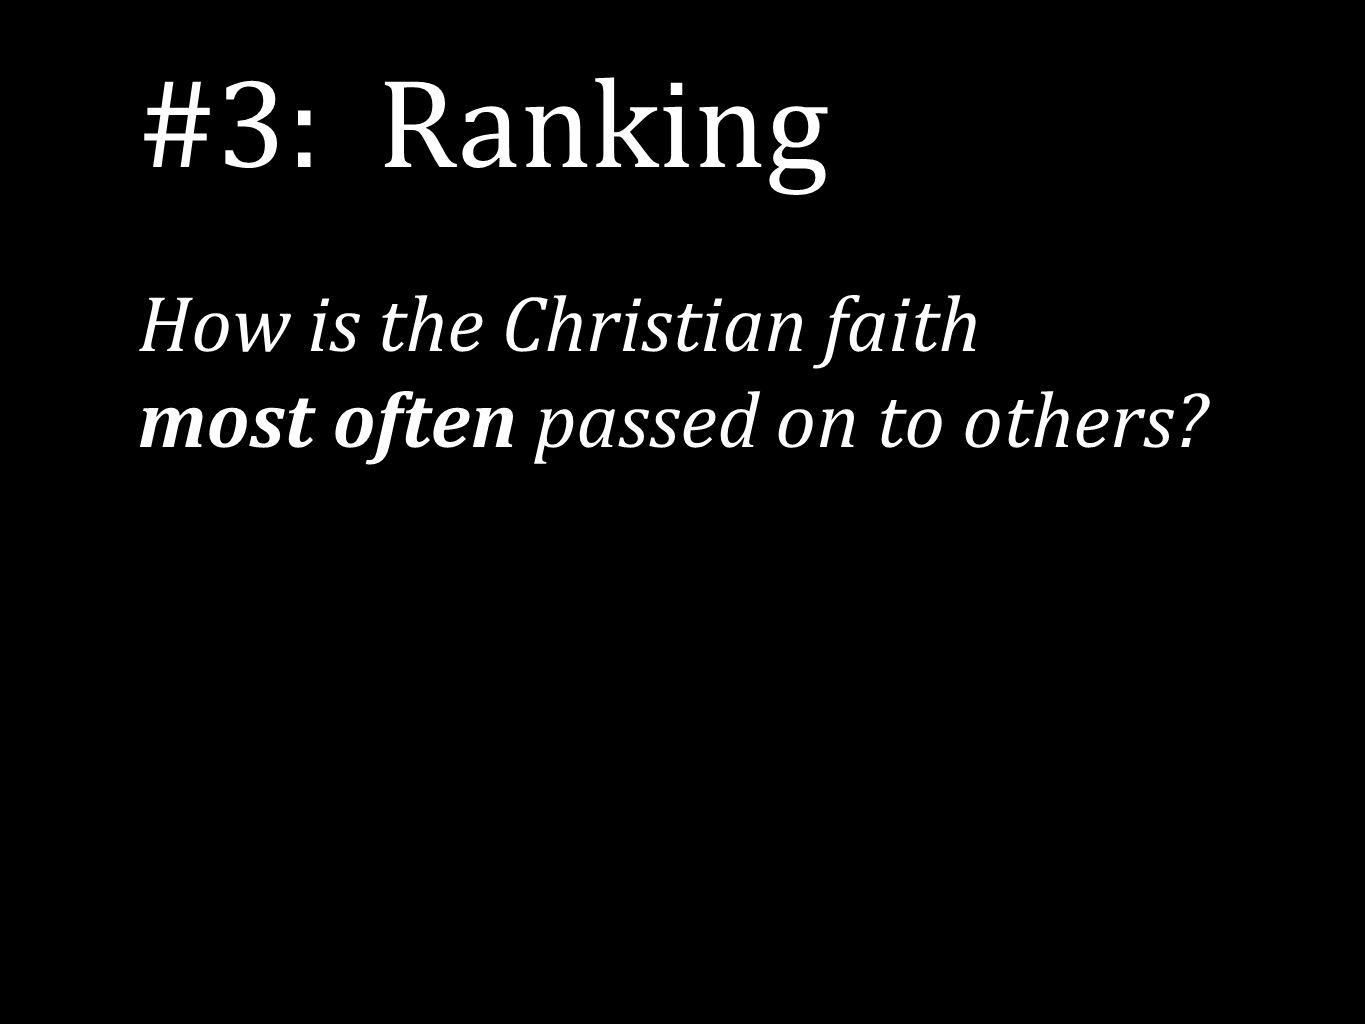 #3: Ranking How is the Christian faith most often passed on to others?